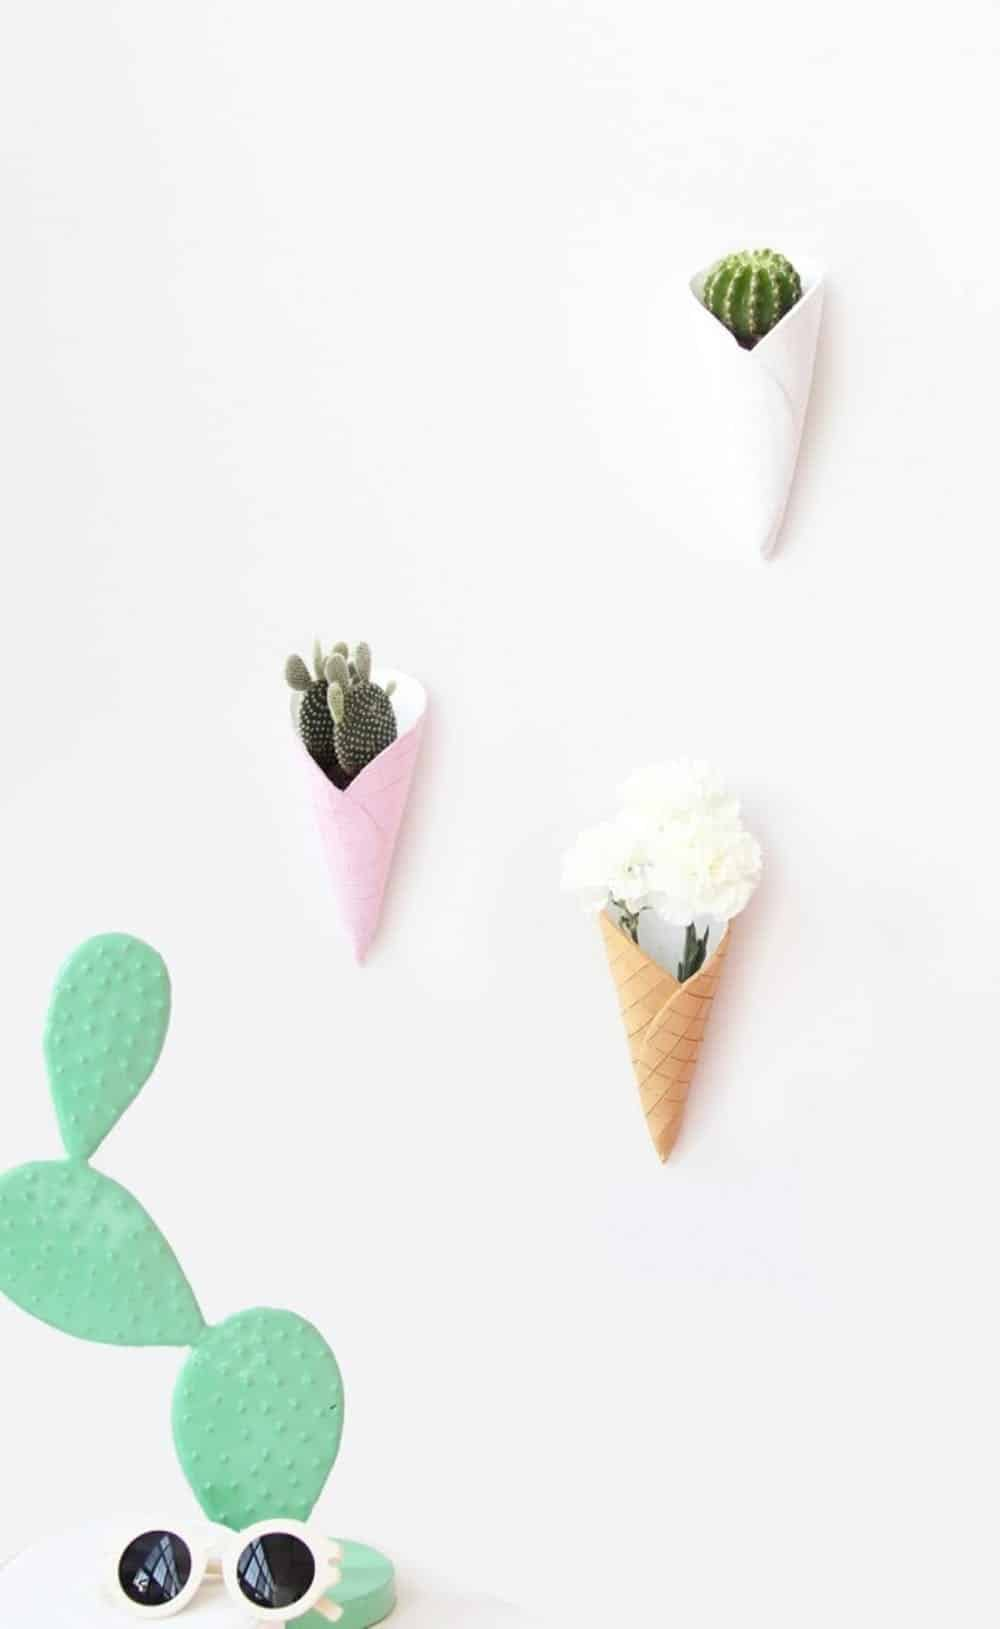 Diy ice cream cone wall planters